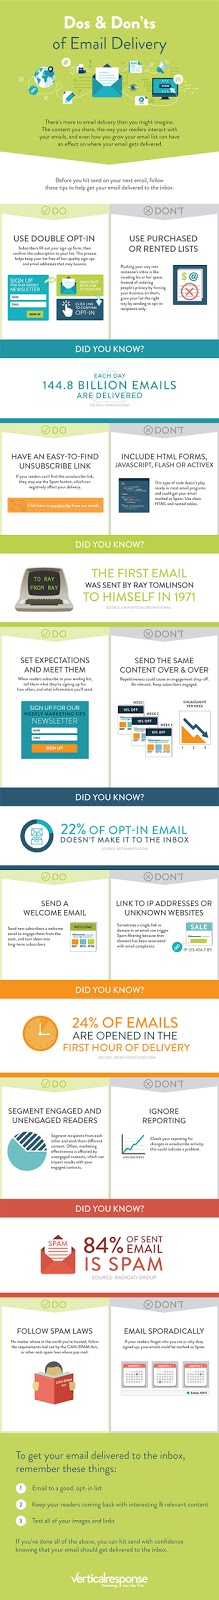 12 Email Marketing Tips to Ensure Your Campaign Isn't a Waste of Time and Money